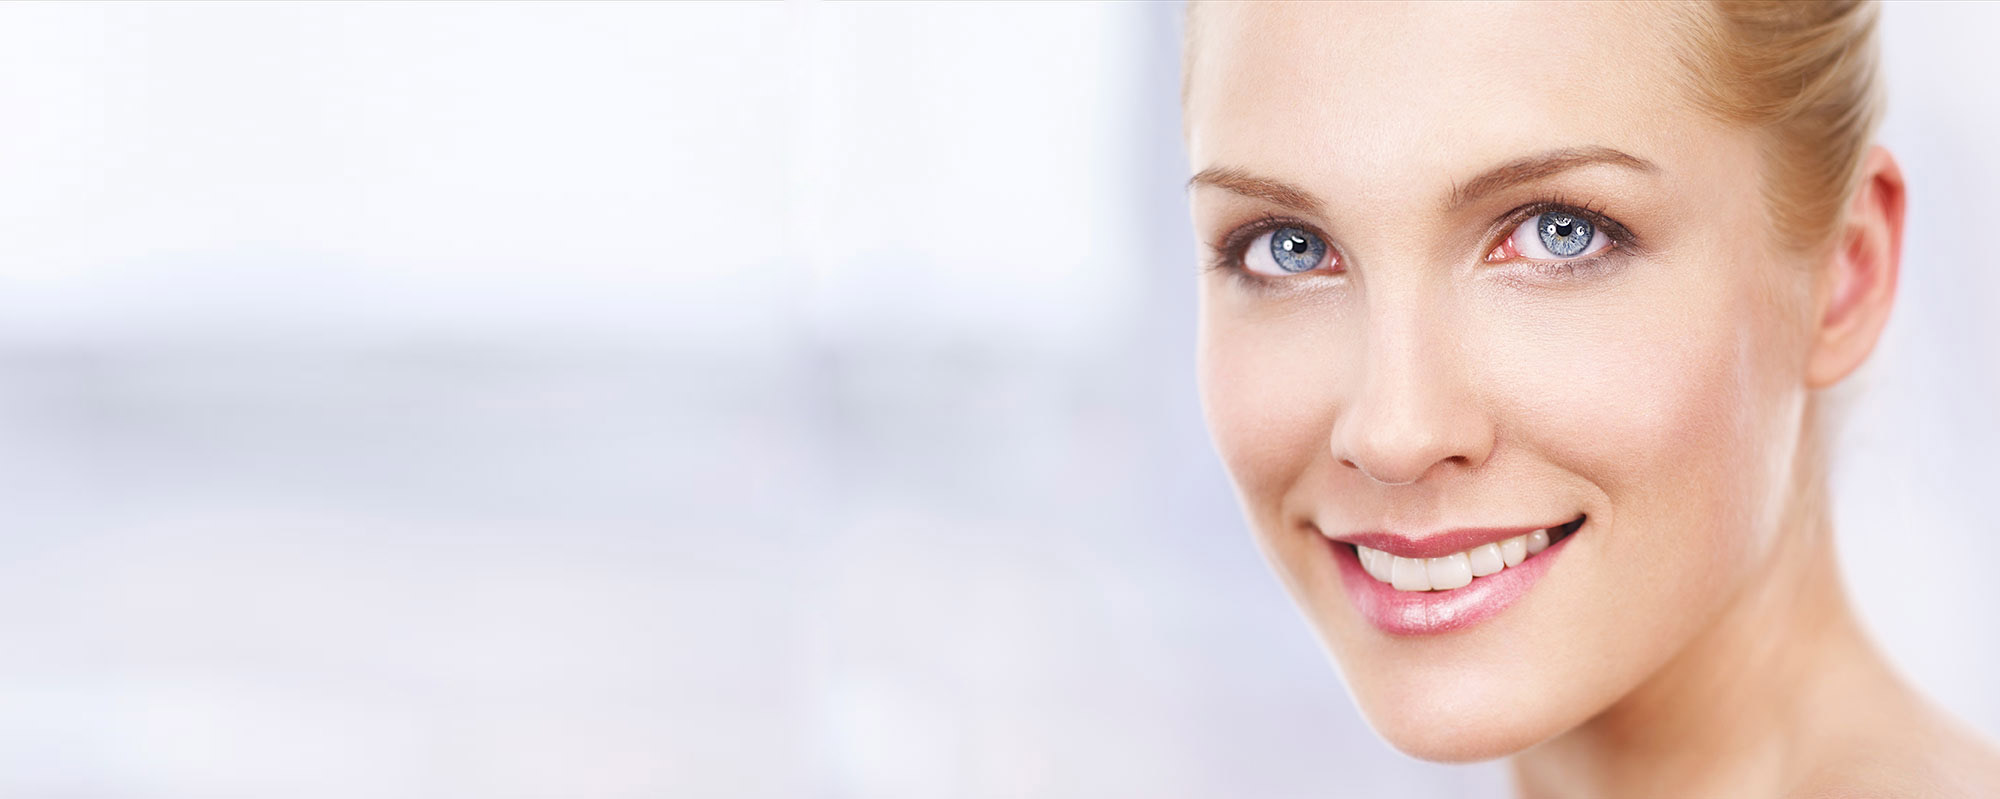 facial aesthetics treatments